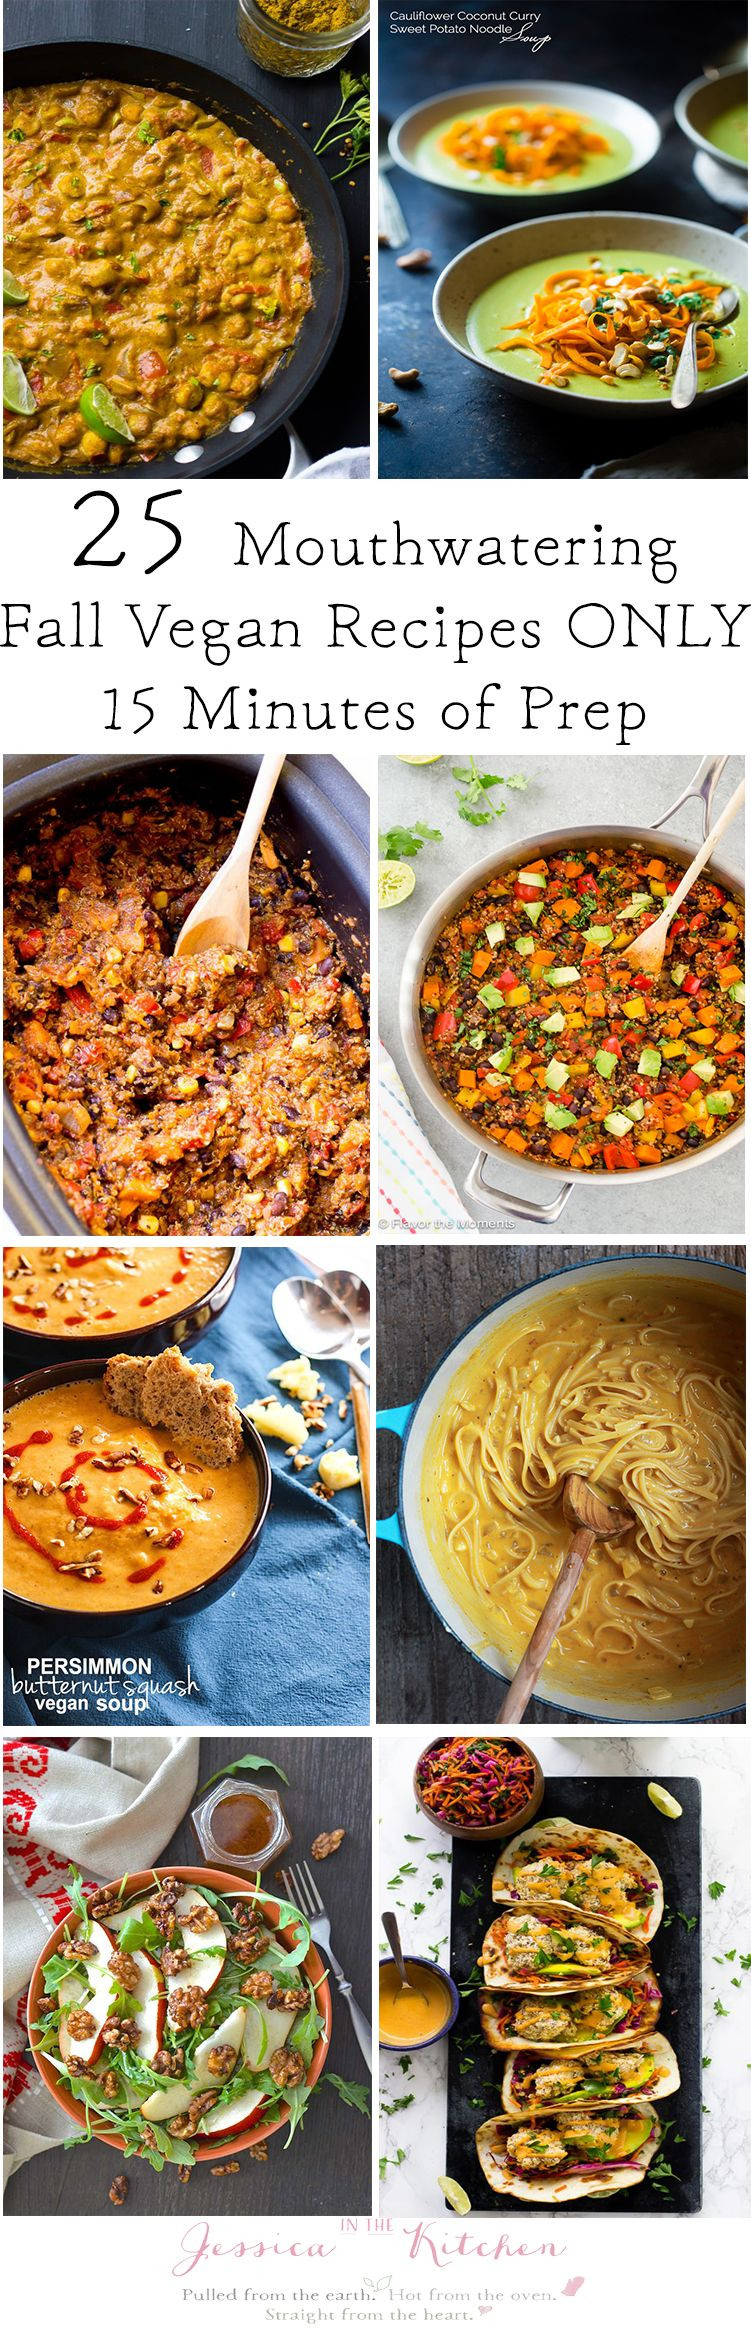 Fall Vegan Recipes  25 Mouthwatering Fall Vegan Dinner Recipes You Can Prep in